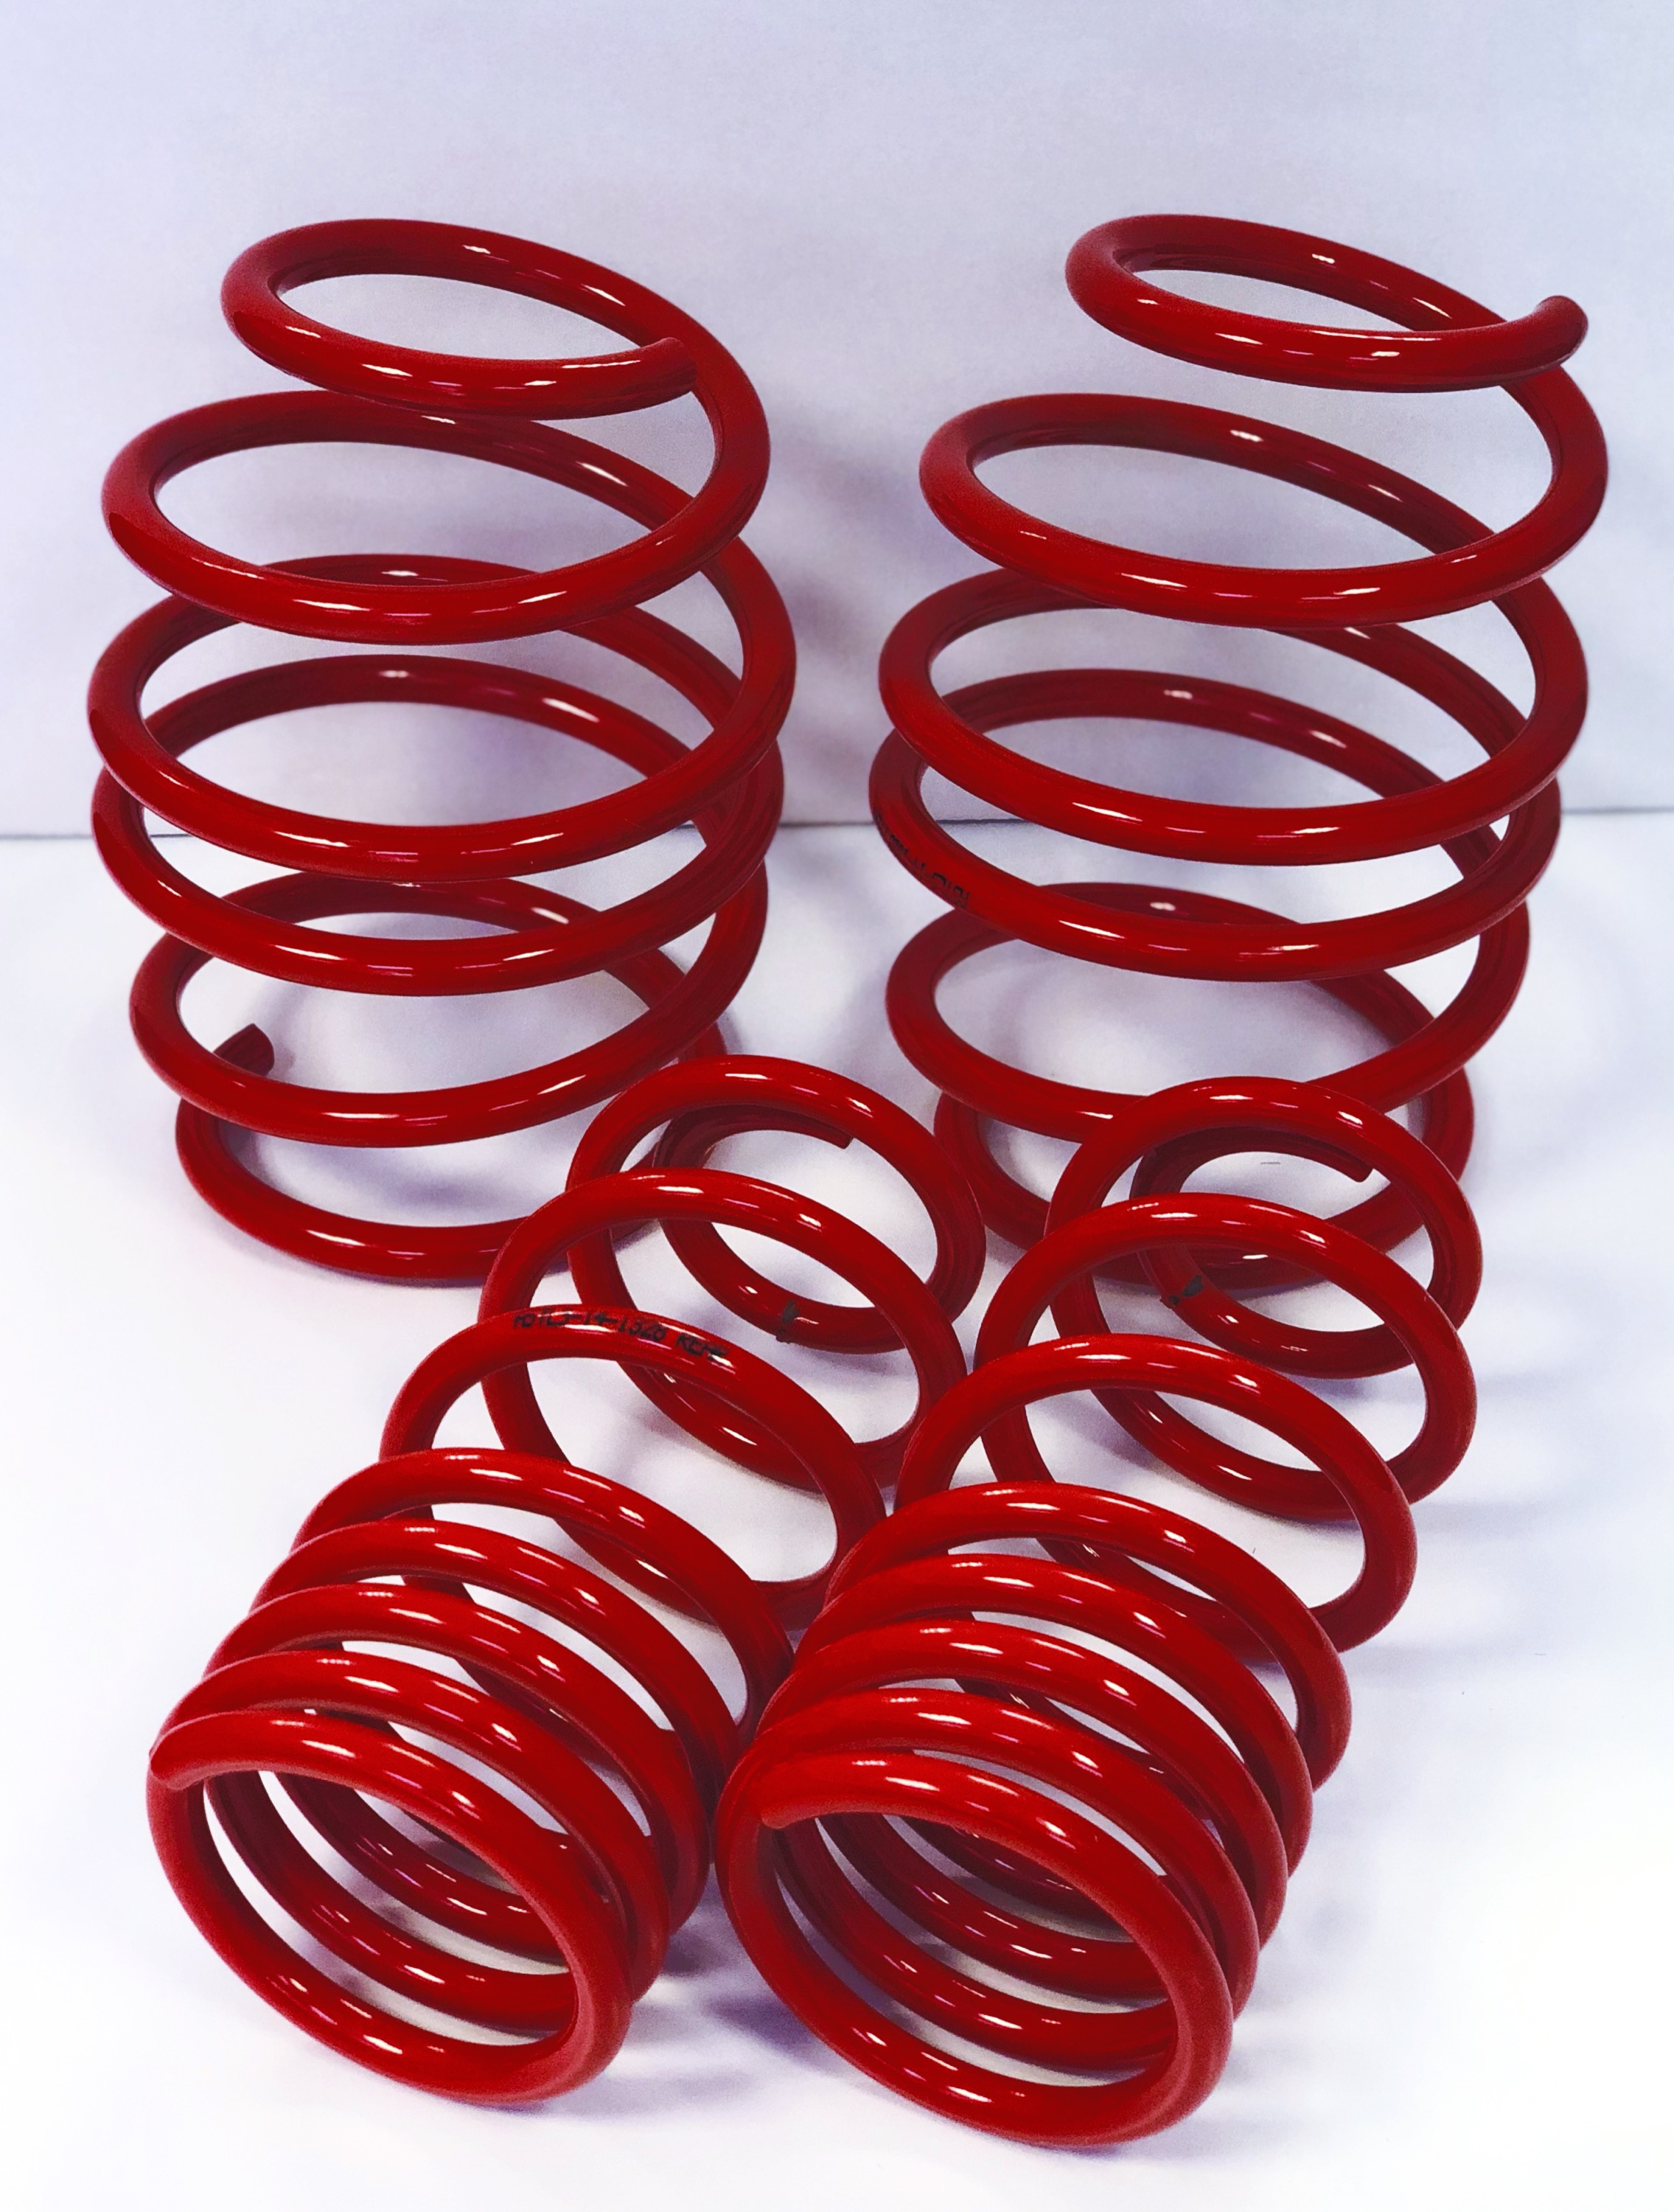 Peugeot 605 AST Suspension Lowering Springs 40MM